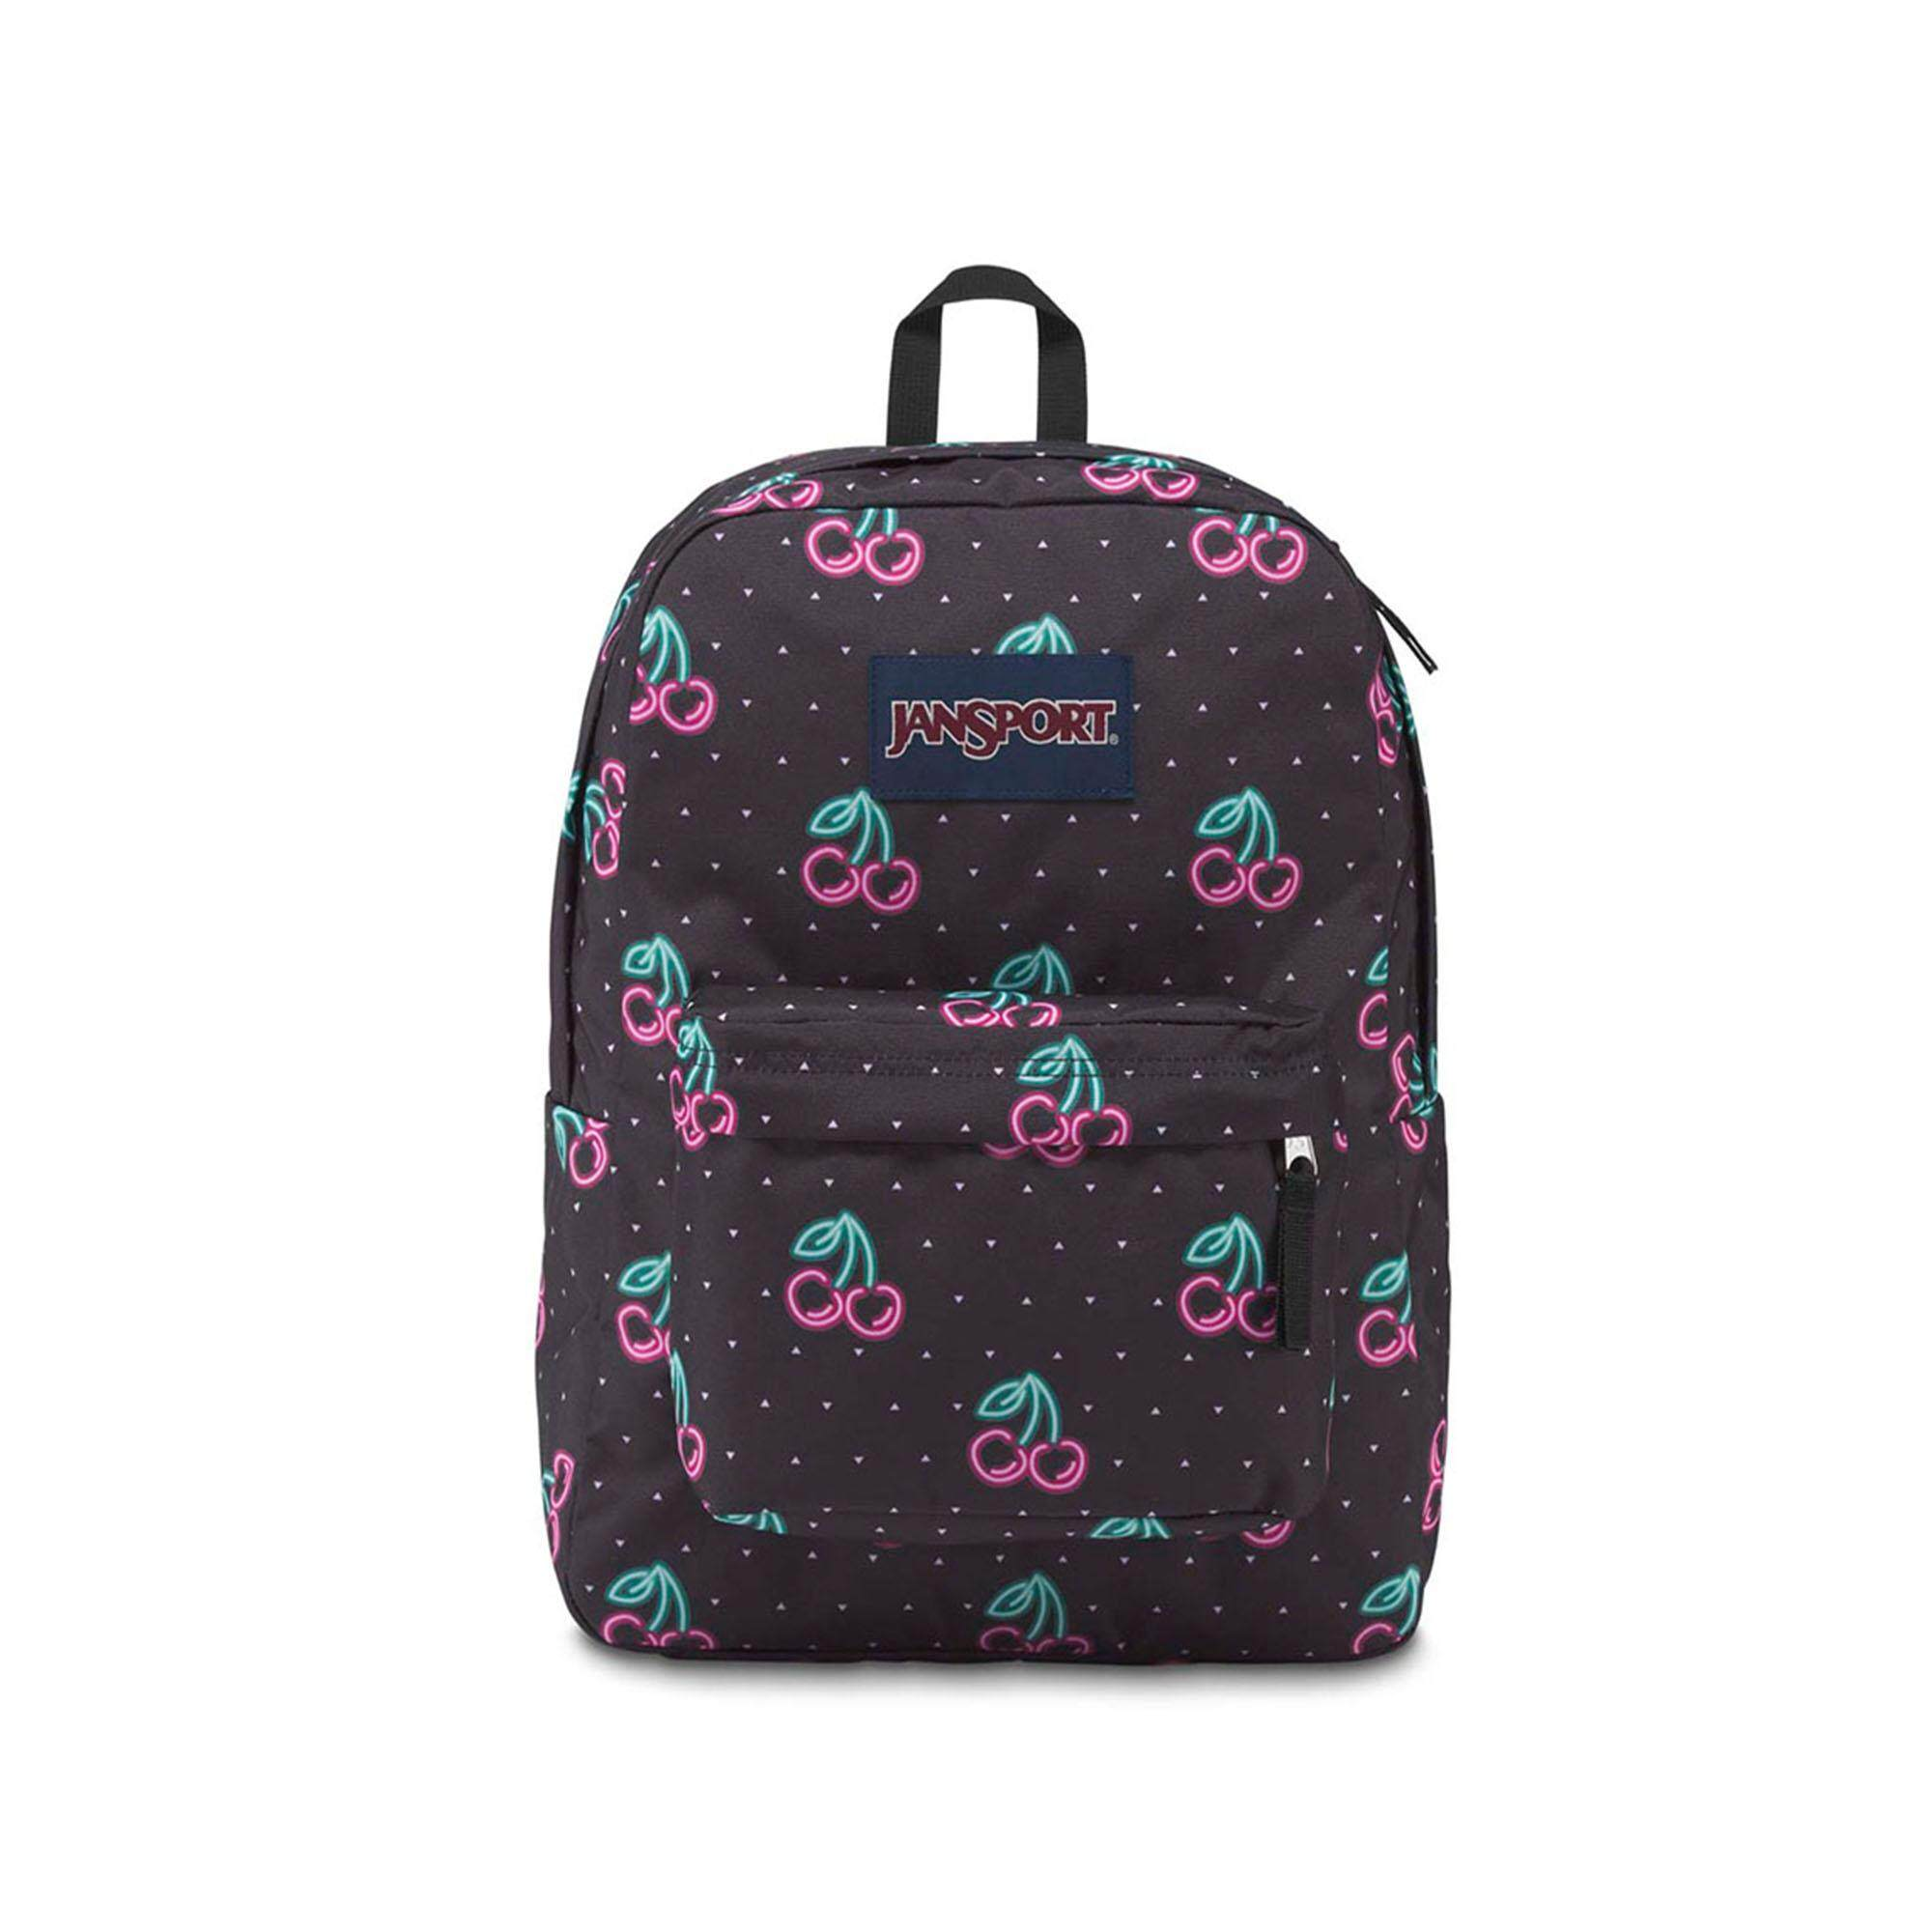 d58e1ed2b08 JanSport - Buy JanSport at Best Price in Malaysia